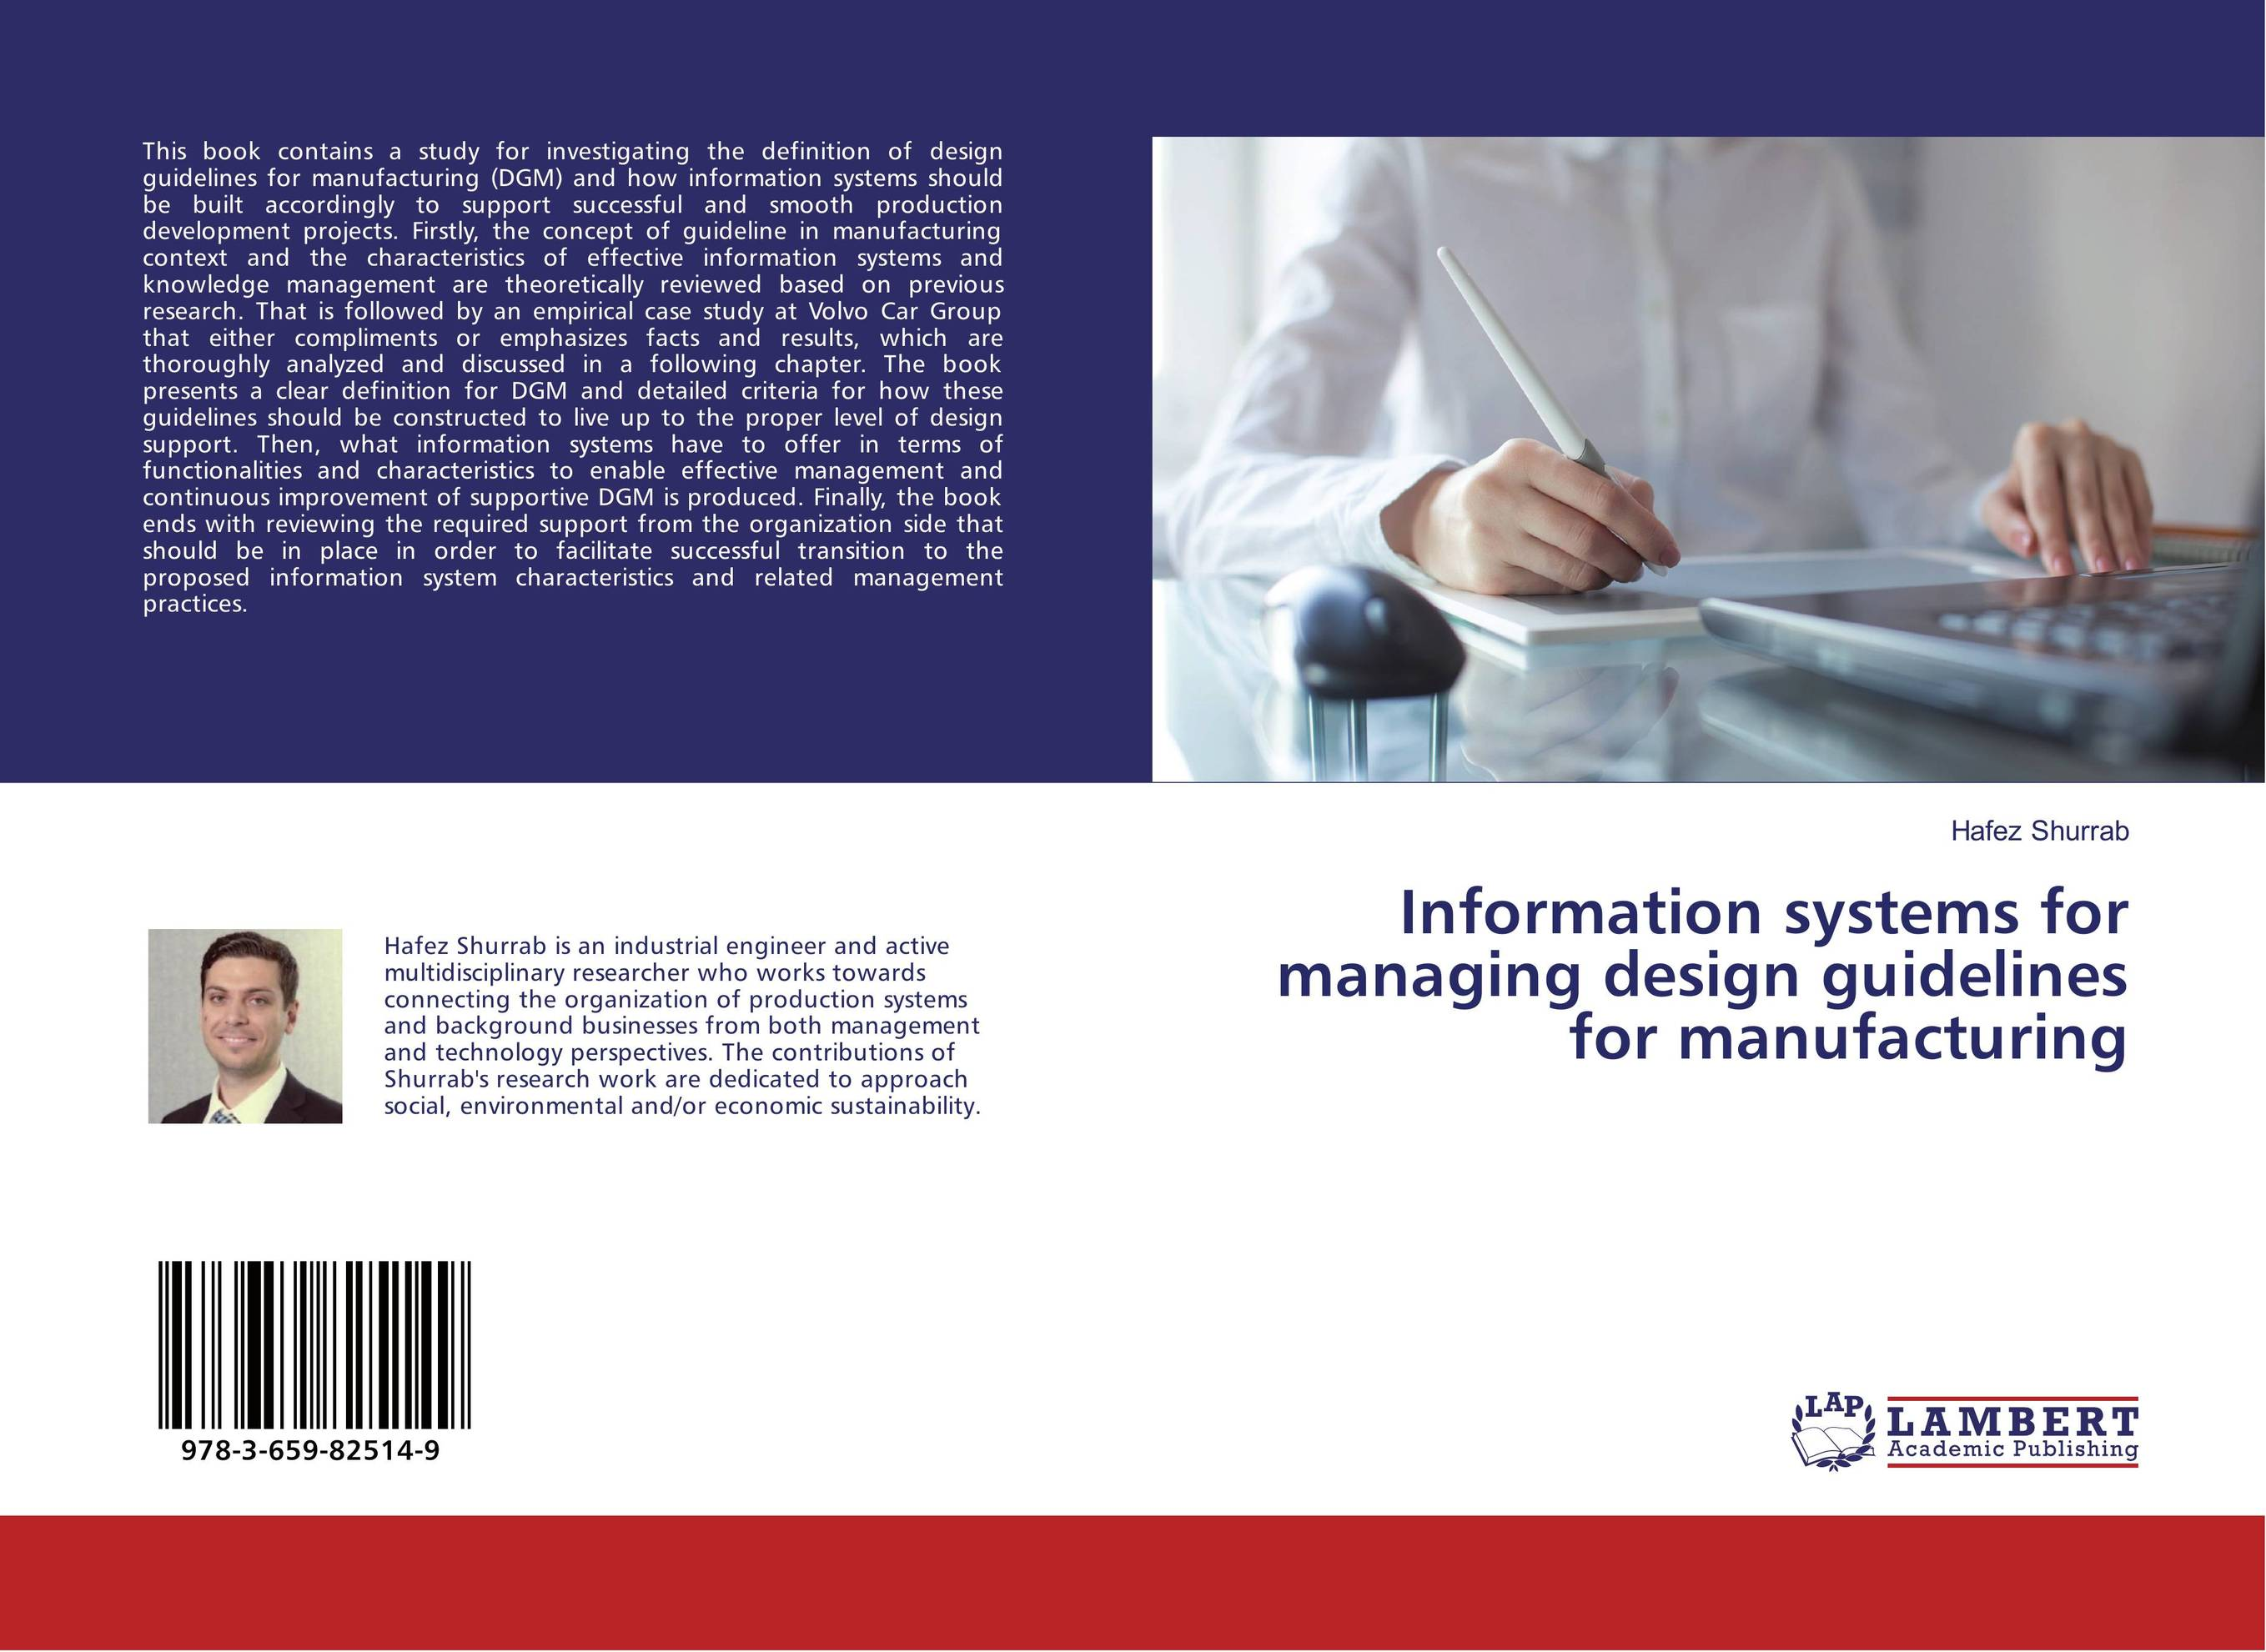 Information systems for managing design guidelines for manufacturing lacywear майка dgm 39 bgt